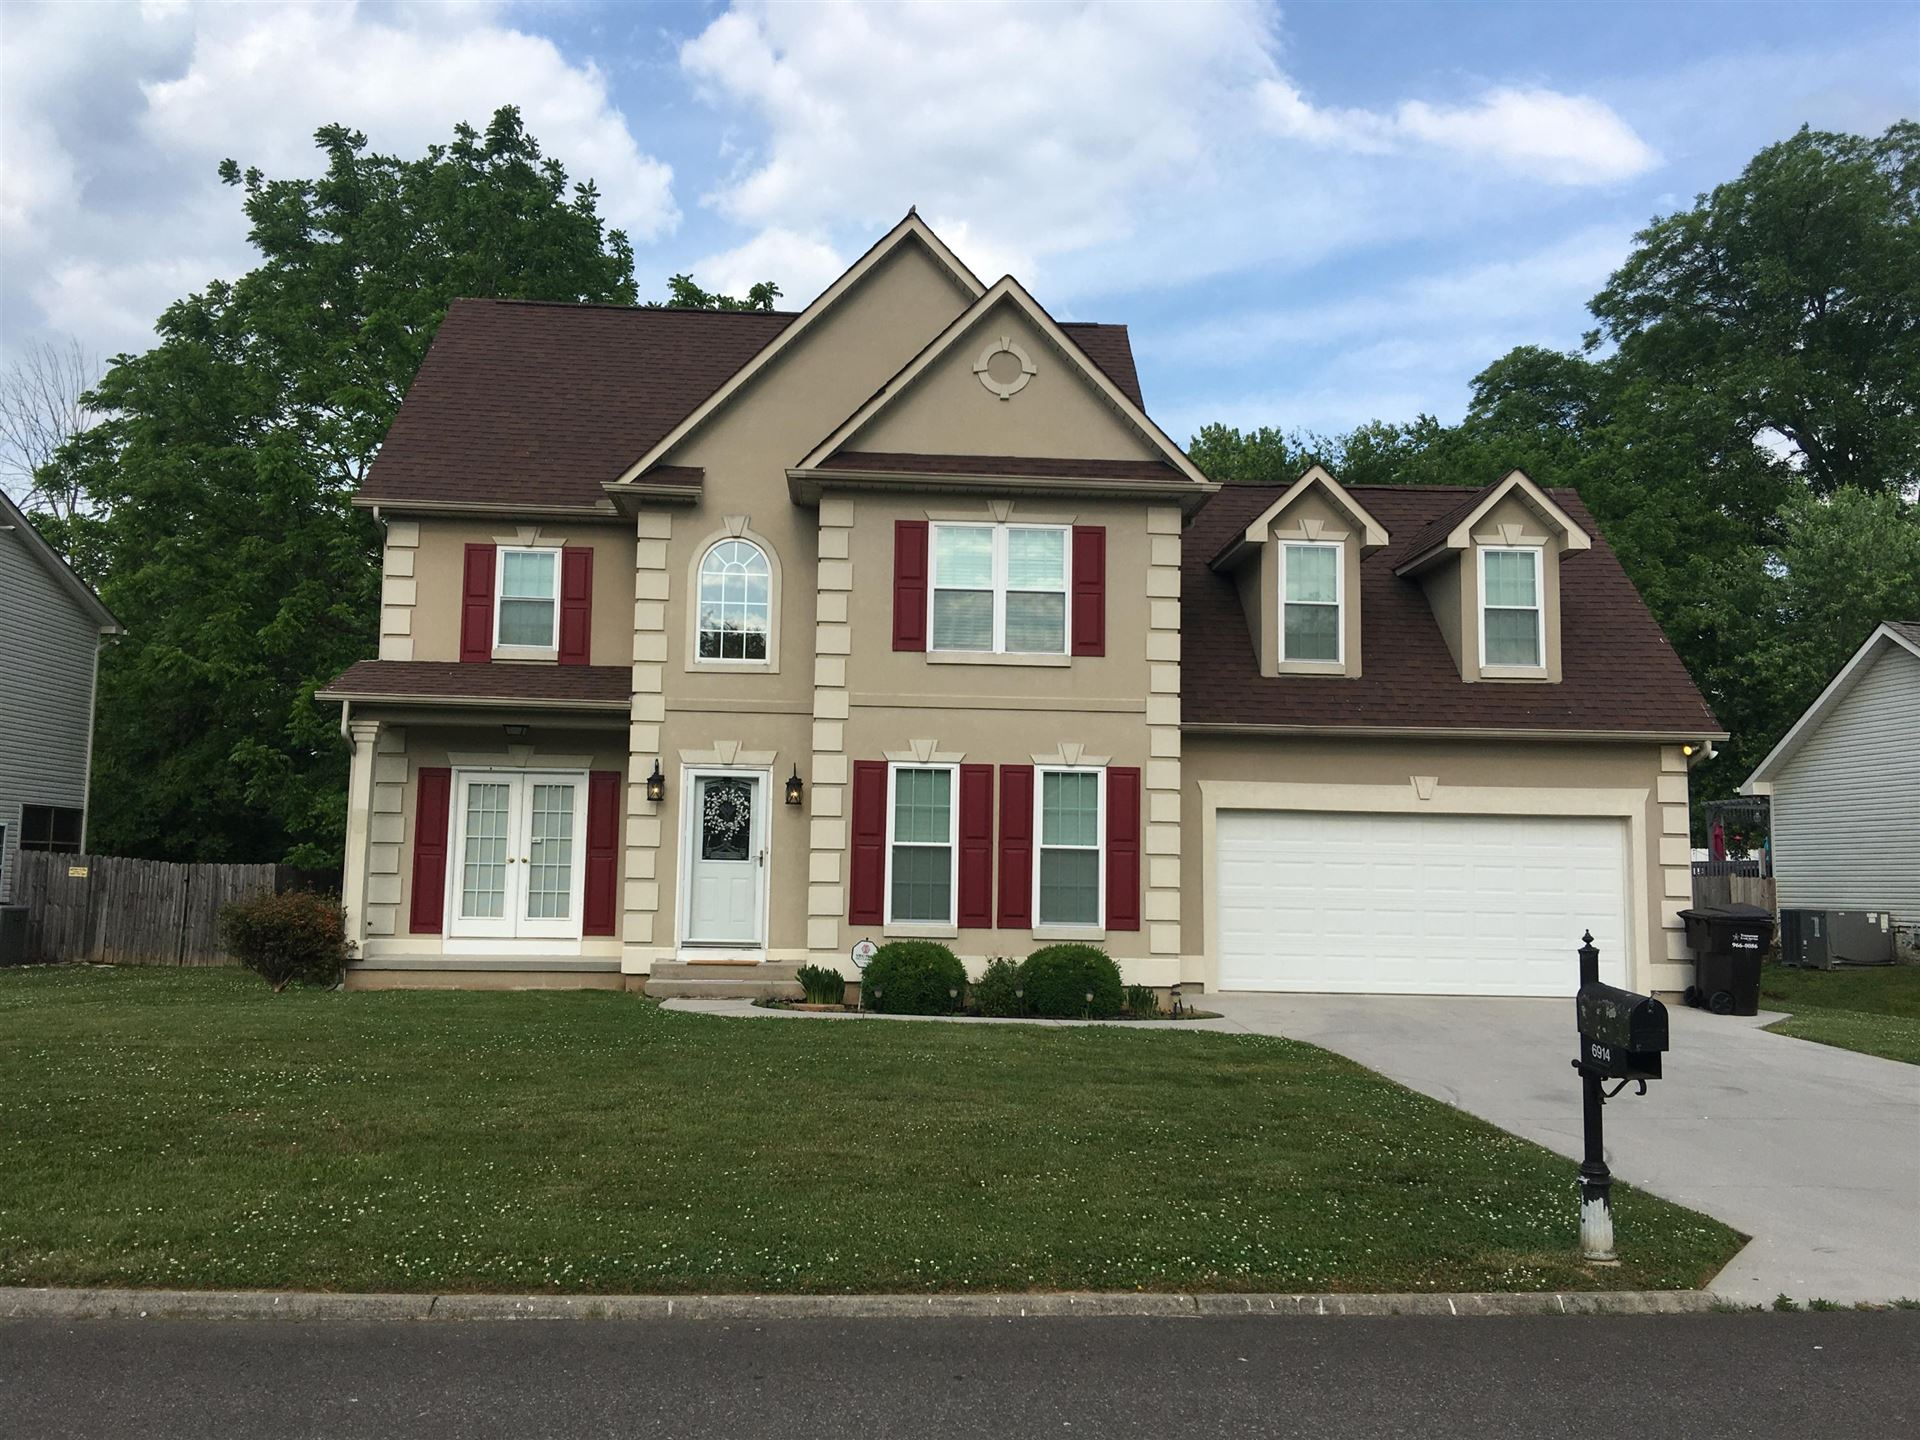 Photo of 6914 Cherry Grove Rd, Knoxville, TN 37931 (MLS # 1154921)